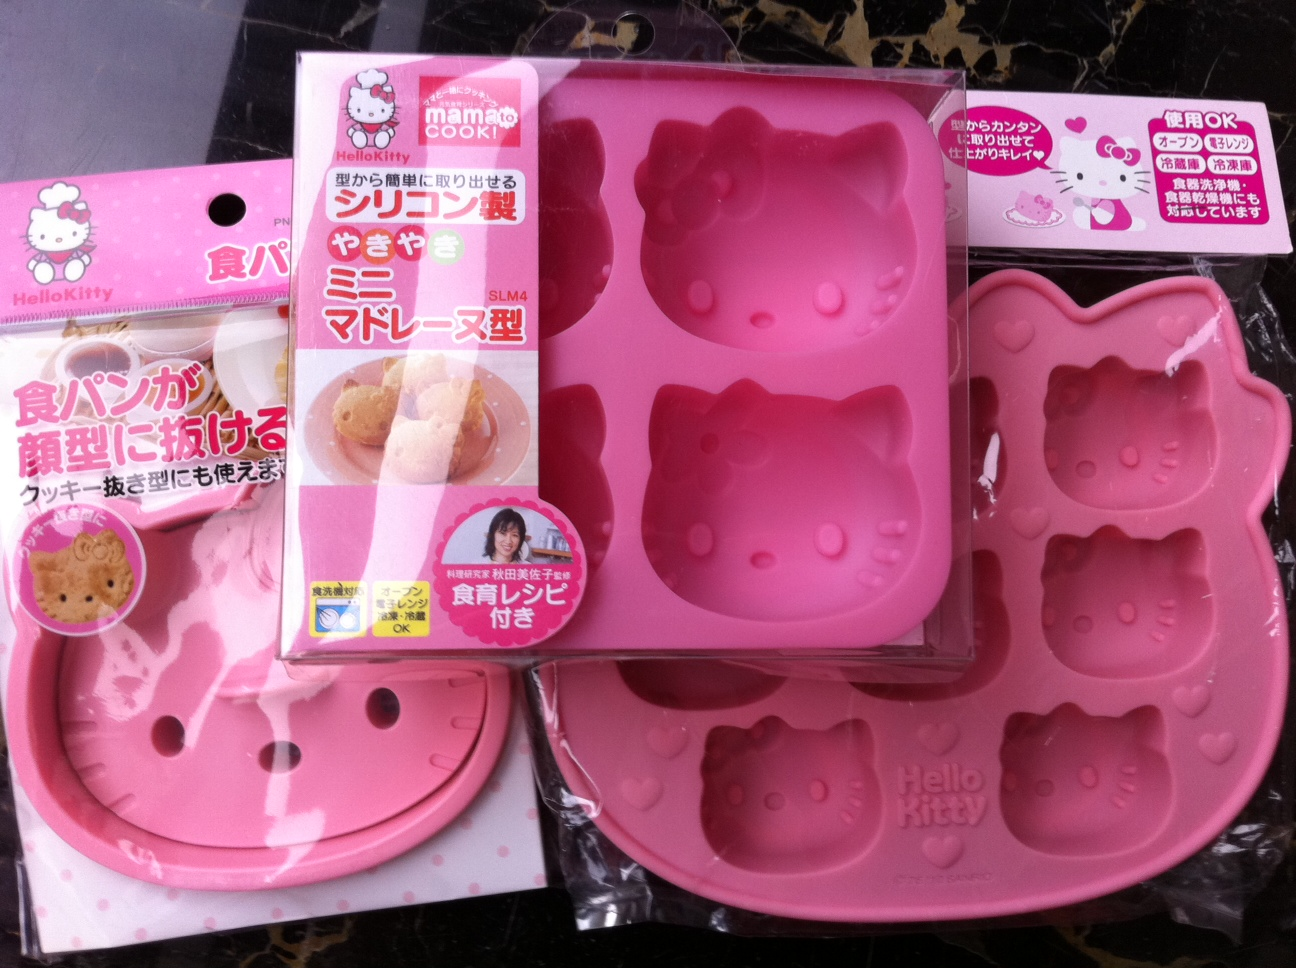 a hungry girls guide to taipei My kitchen hello kitty candy